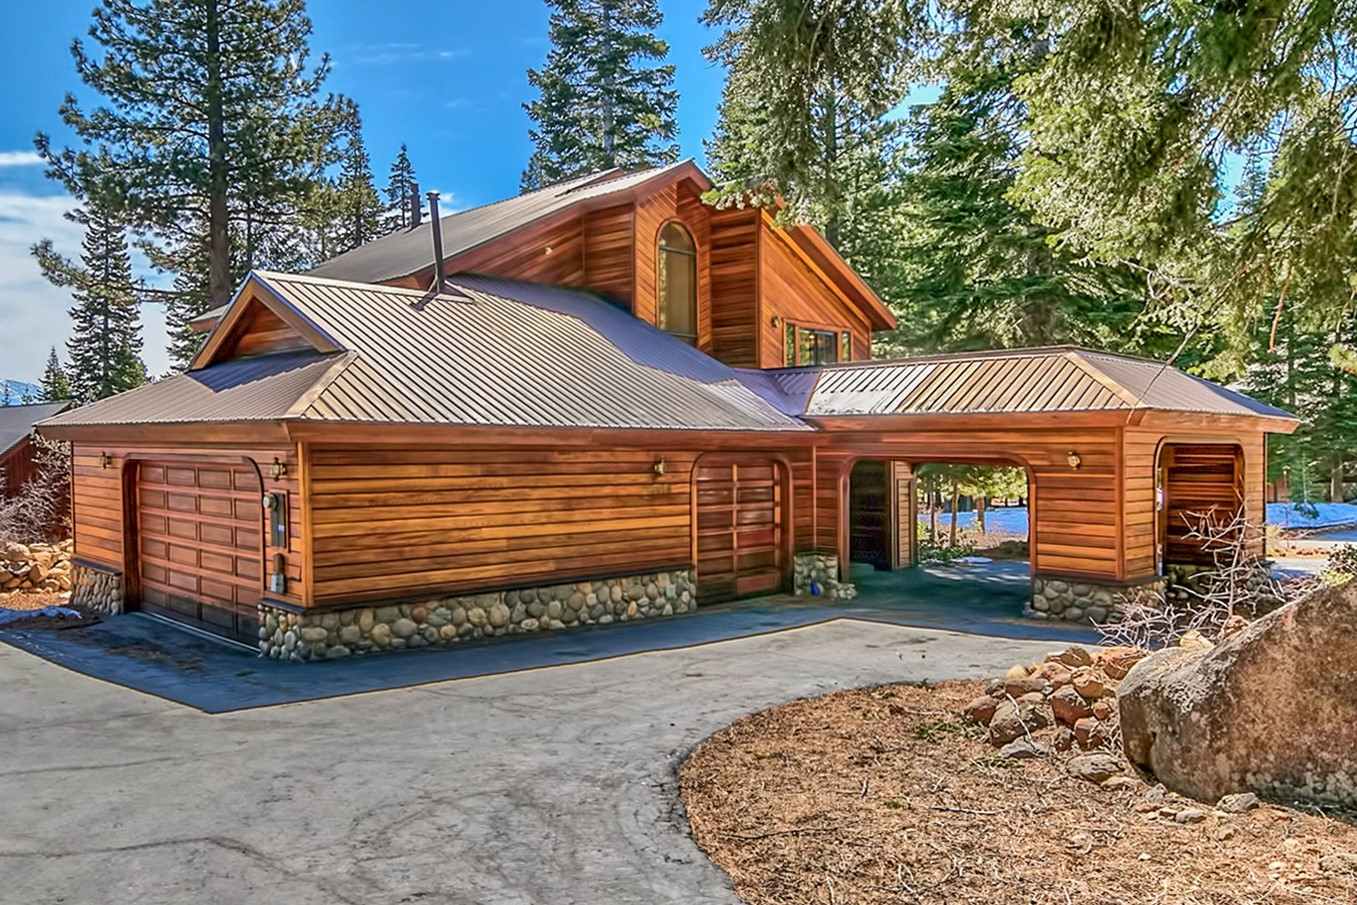 Single Family Home for Active at 10985 Mougle Lane, Truckee Ca 96161 10985 Mougle Lane Truckee, California 96161 United States